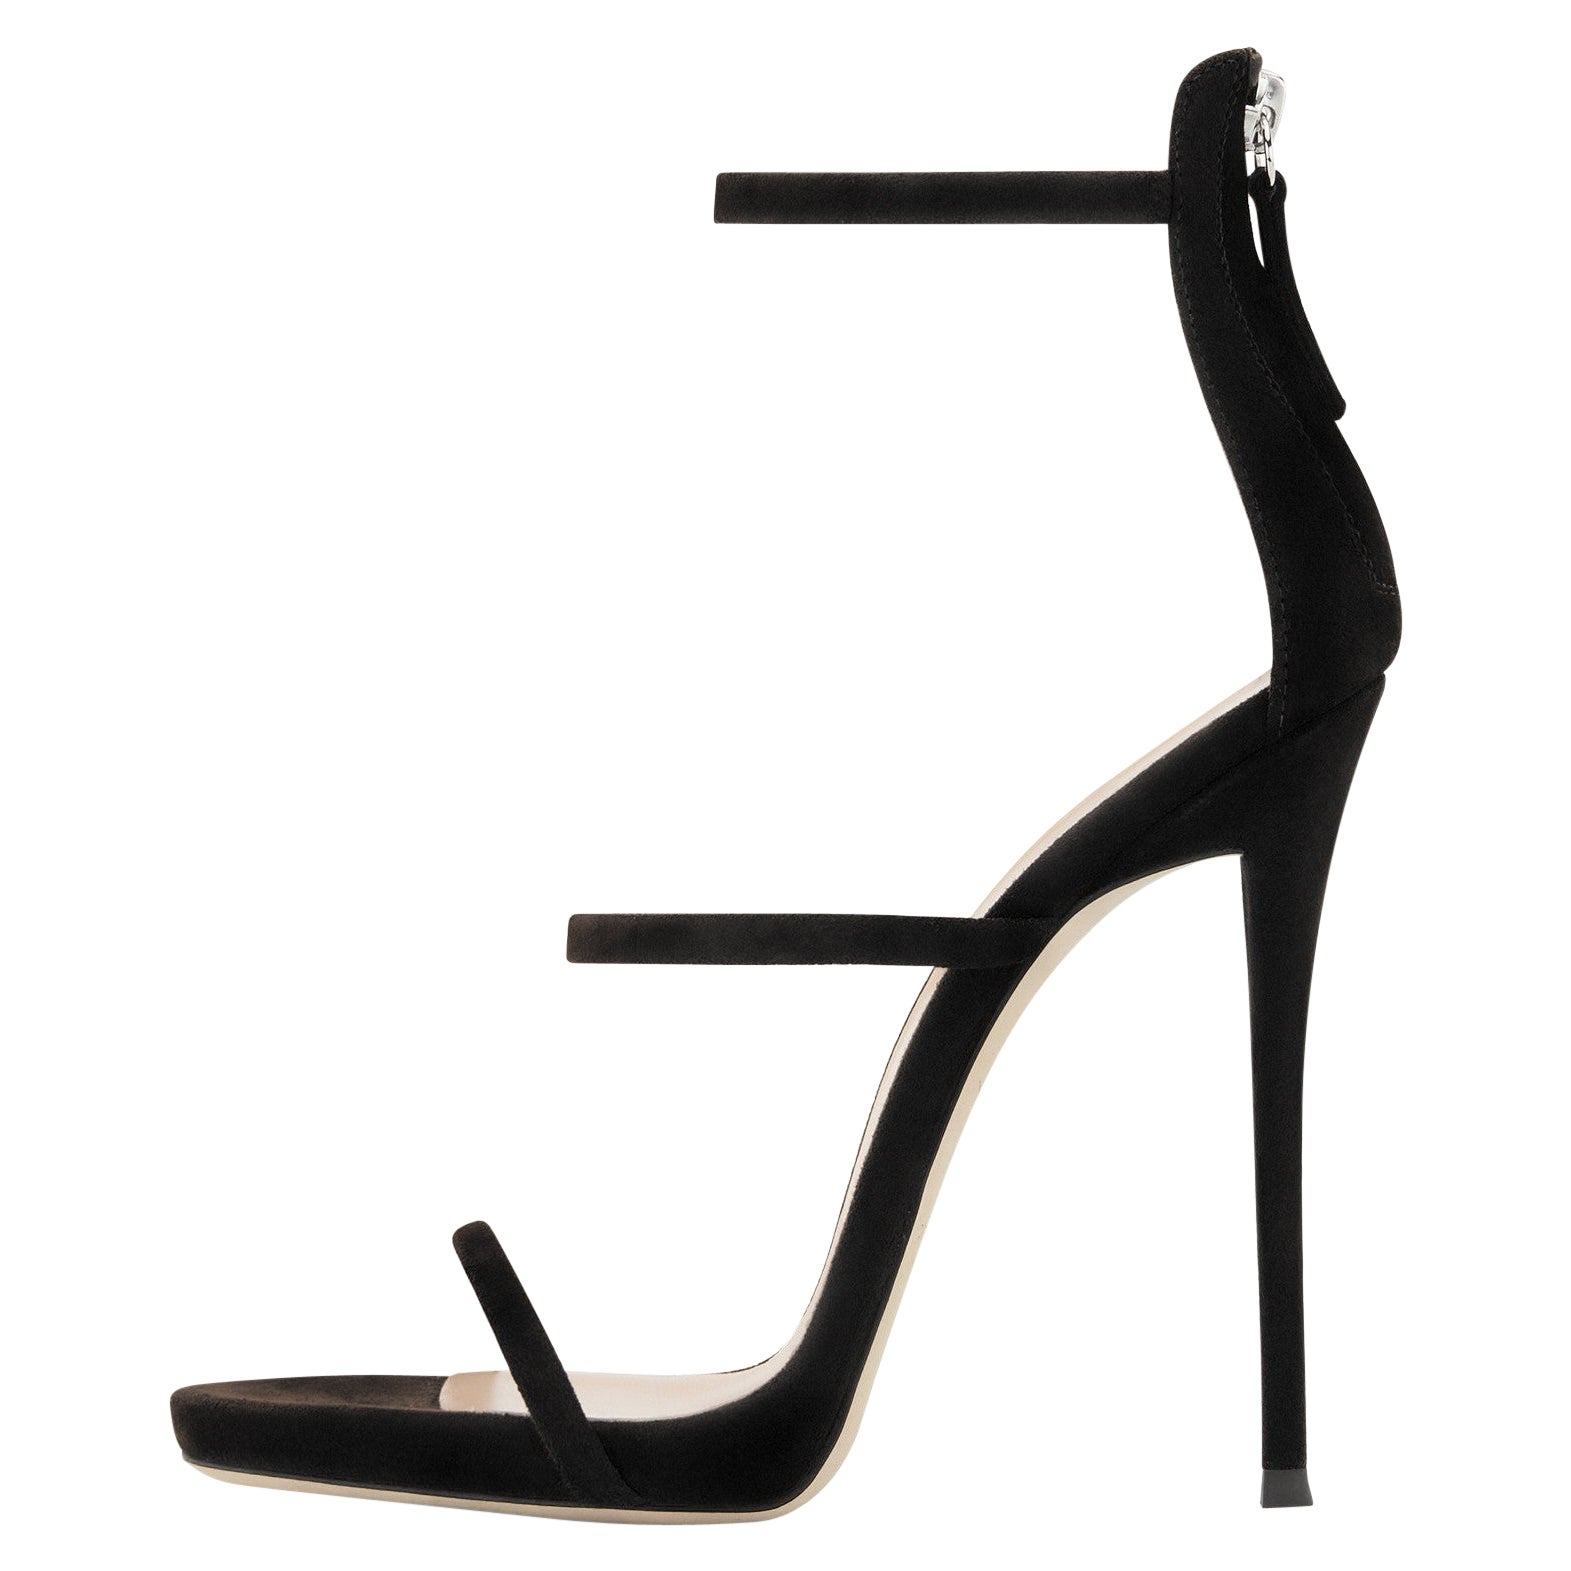 Giuseppe Zanotti NEW Black Suede Strappy Evening Sandals Heels in Box (IT 36)